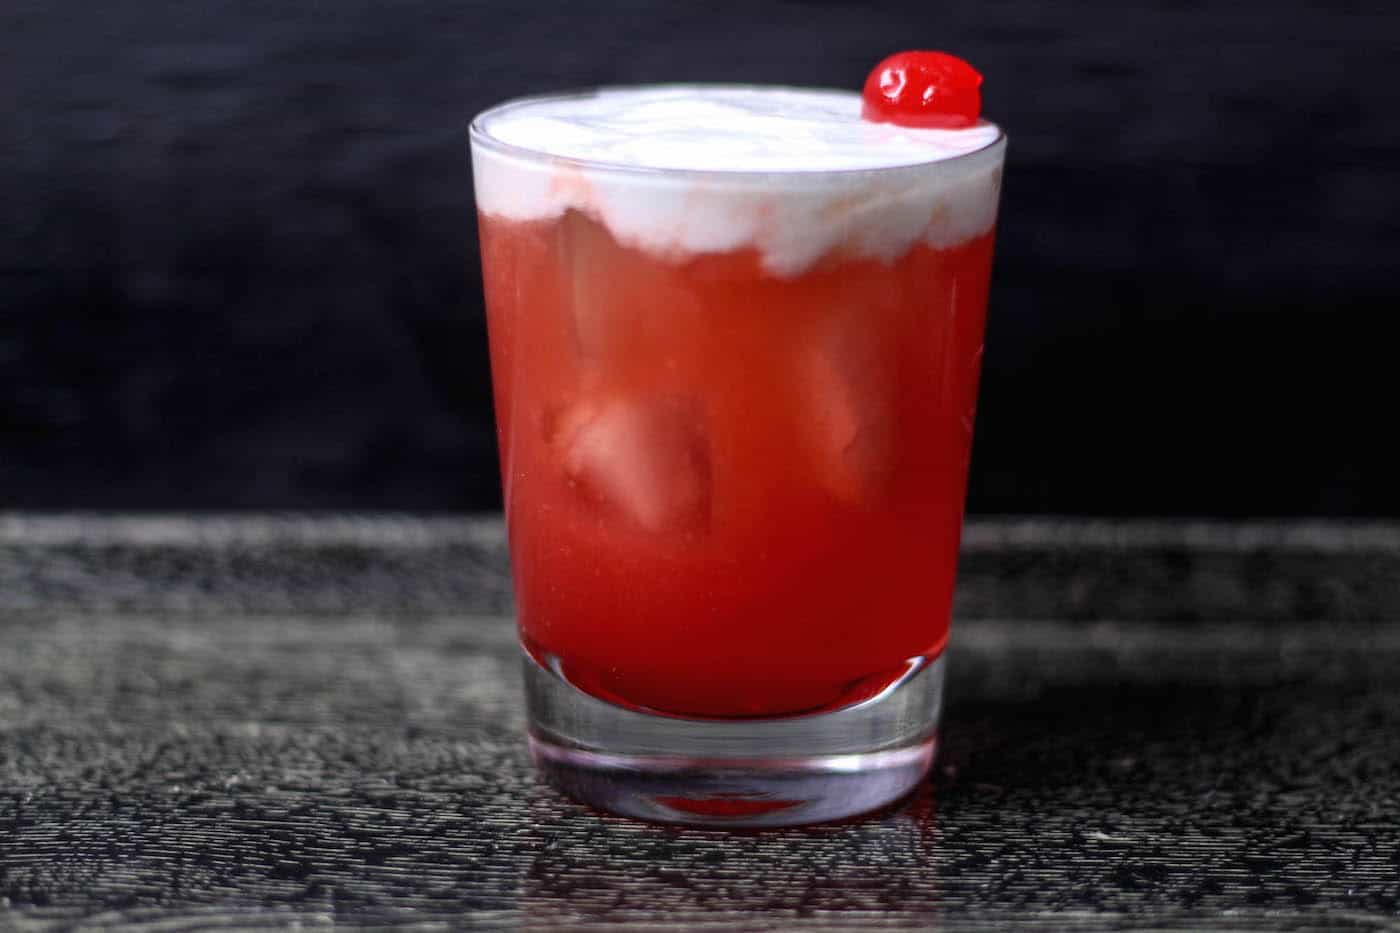 This cherry whiskey sour recipe uses maraschino cherries and their juice as the sweetener. It's easy to make and oh, so smooth and tart!